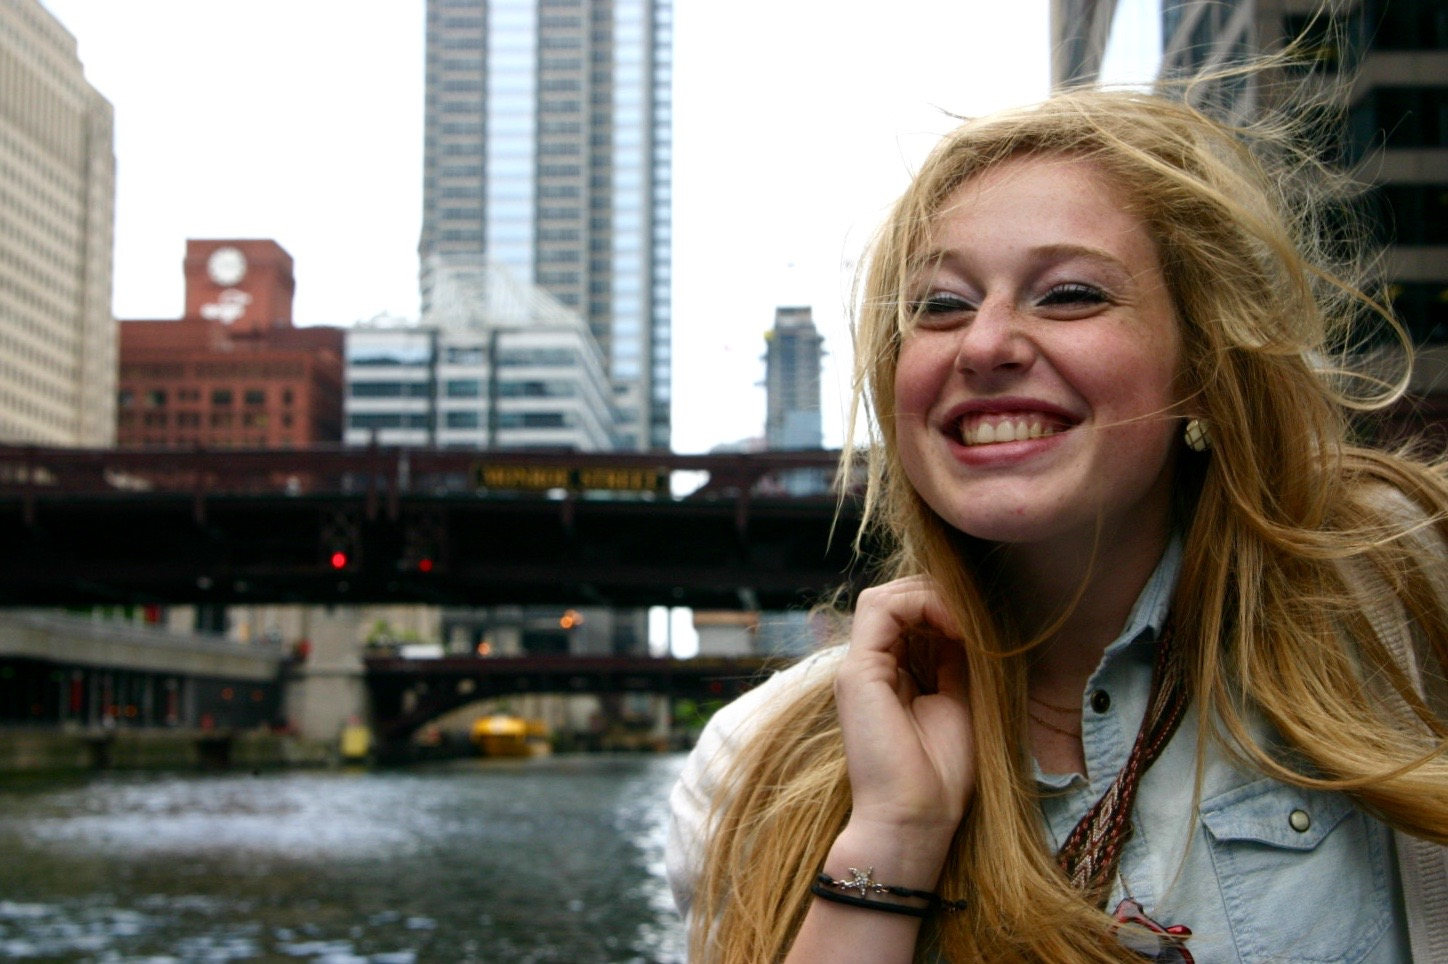 """""""It was really cold but I loved watching the city go by,"""" Hayley Robb of Kentucky said. """"I've always loved Chicago. It made me reminisce about home, but it also made me take in the opportunities that I had."""" <br> Hayley showed off her signature laugh."""